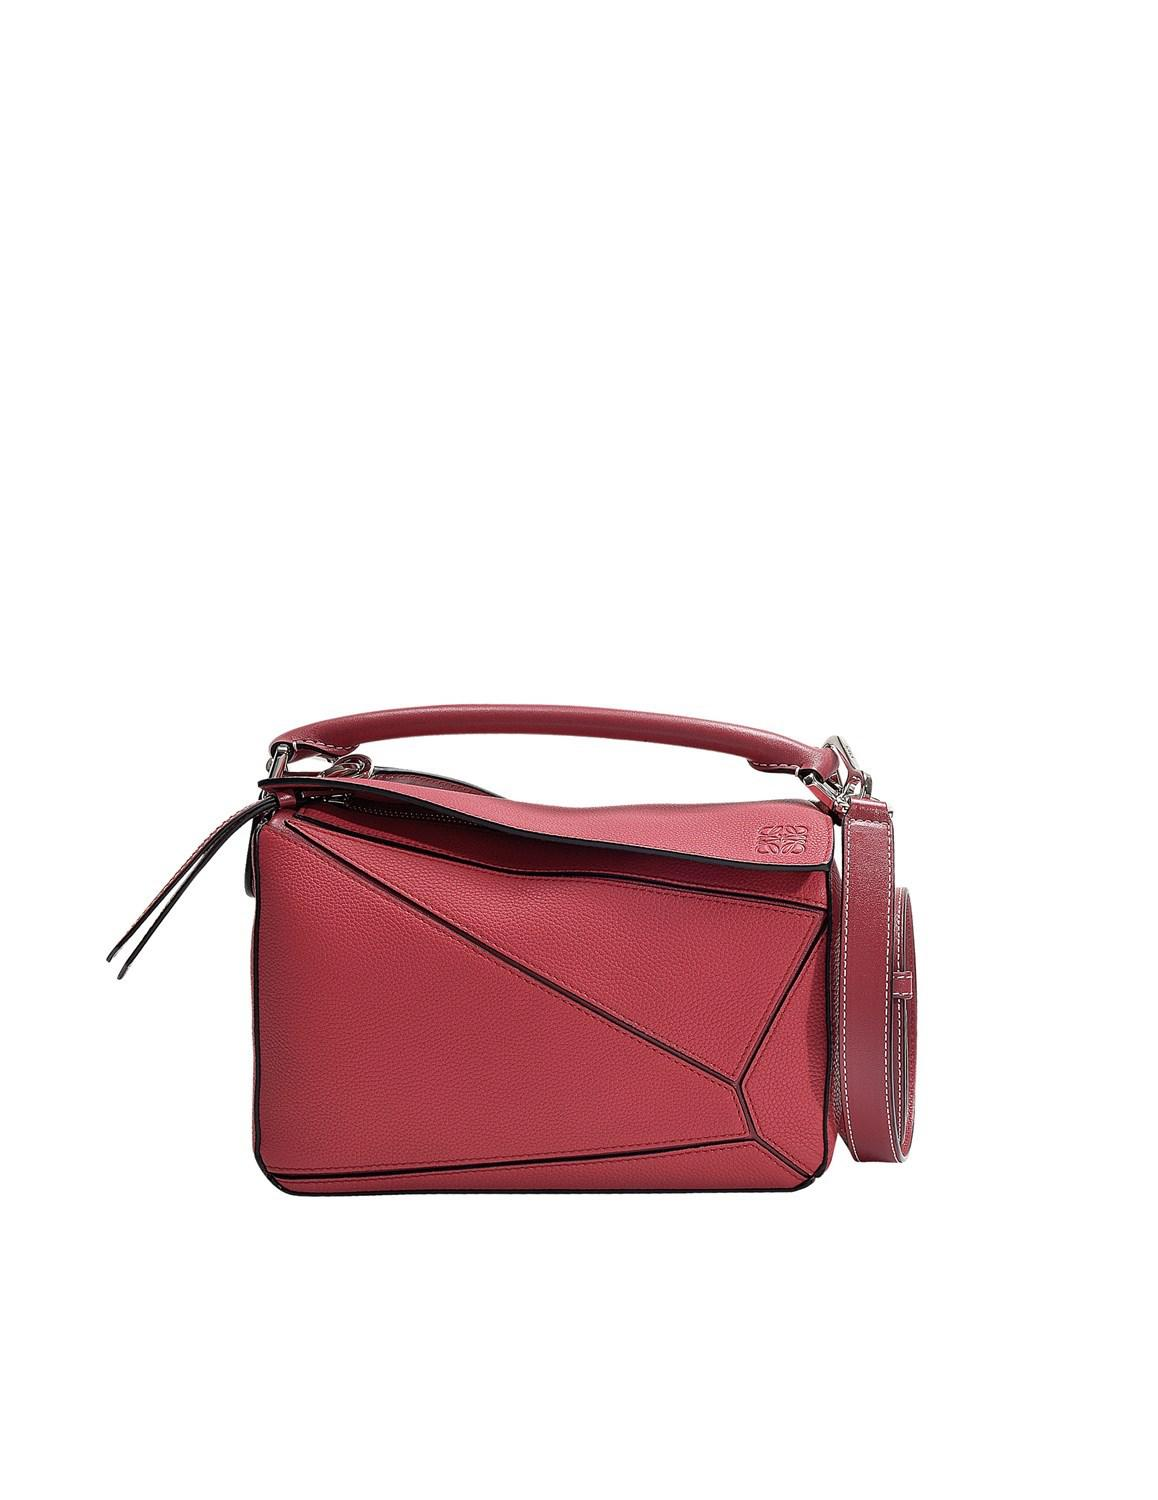 loewe-Pink-Puzzle-Small-Bag-In-Pink-Calfskin.jpeg 5b59414bb7cb3